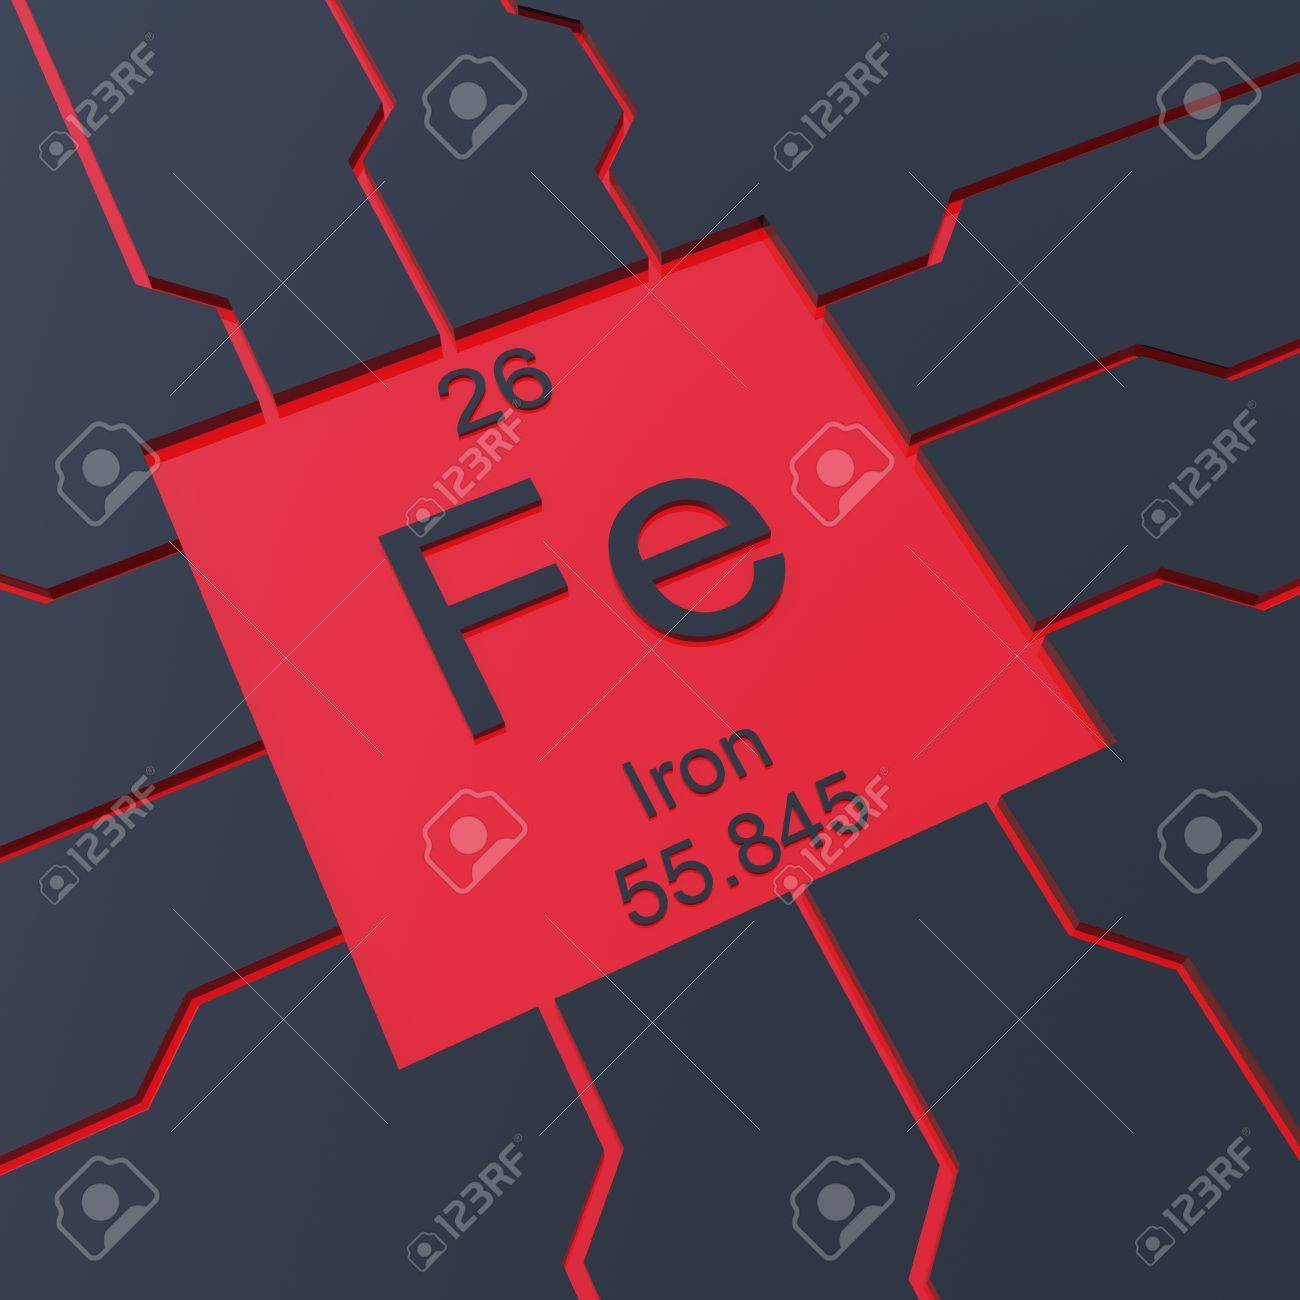 Iron symbol element from the periodic table stock photo picture iron symbol element from the periodic table stock photo 31217741 urtaz Gallery